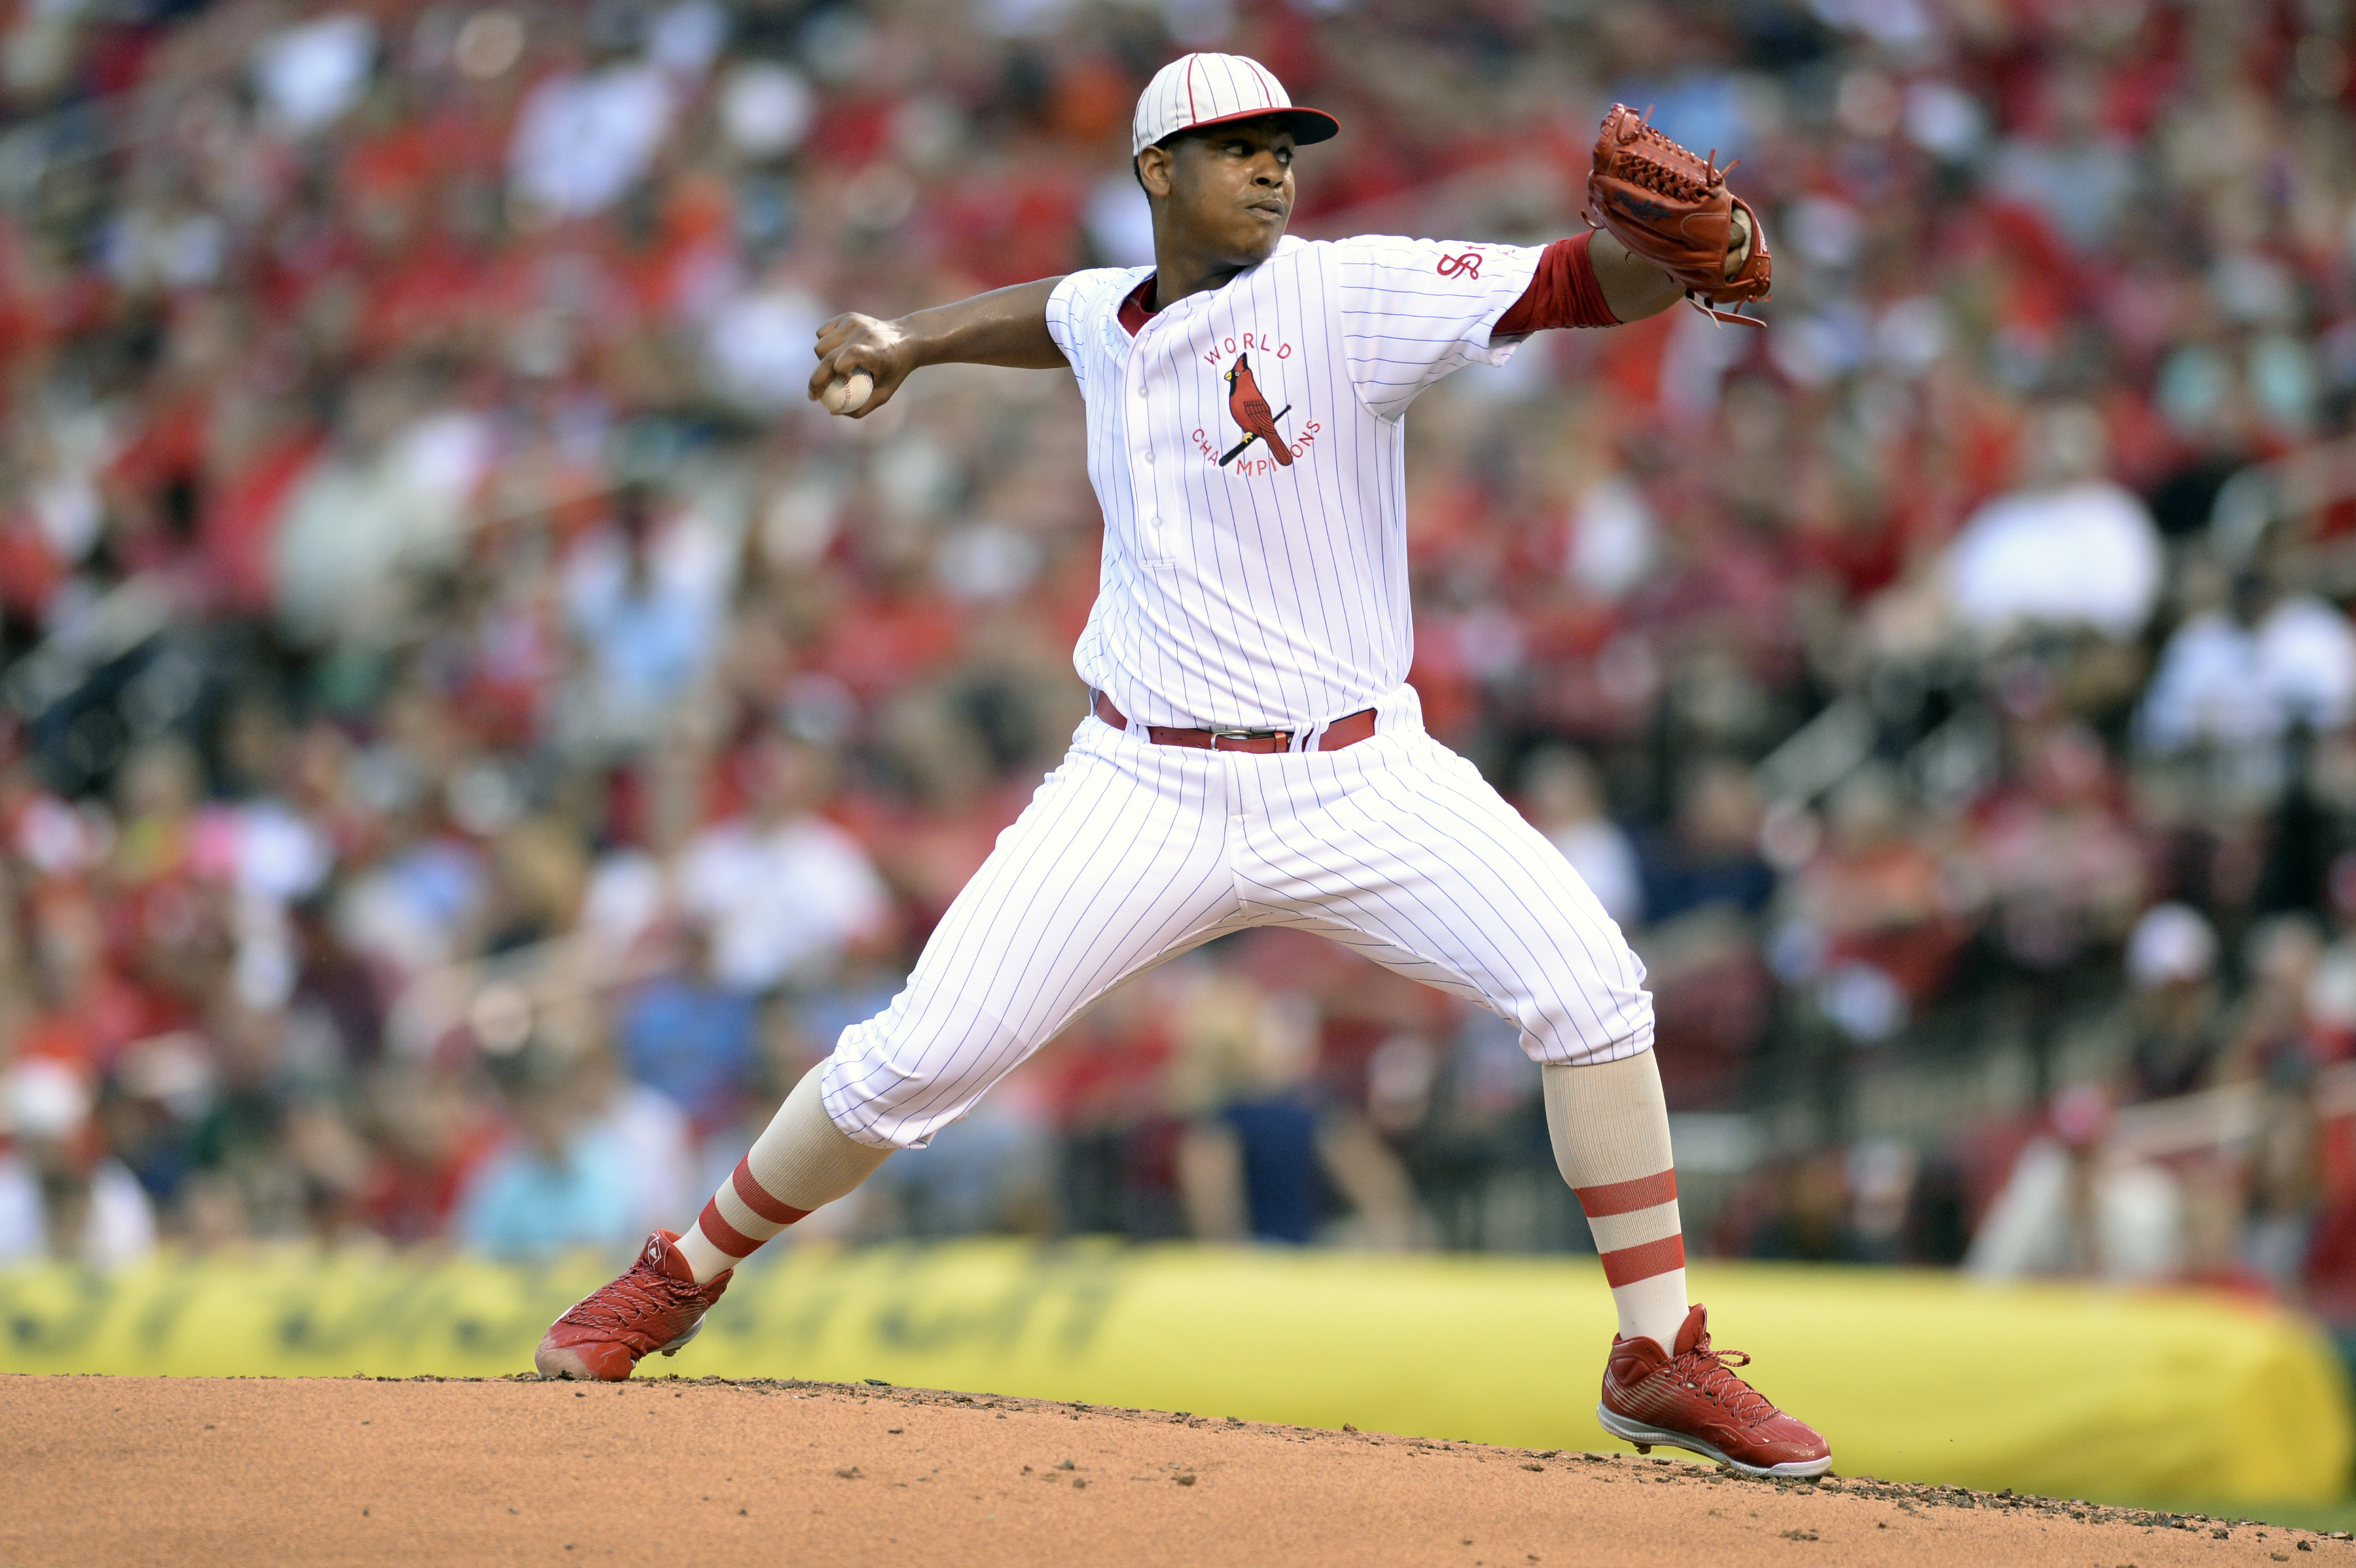 St. Louis Cardinals starting pitcher Alex Reyes (61) pitches against the Oakland Athletics during the second inning of a baseball game Saturday, Aug. 27, 2016, in St. Louis. (AP Photo/Michael Thomas)